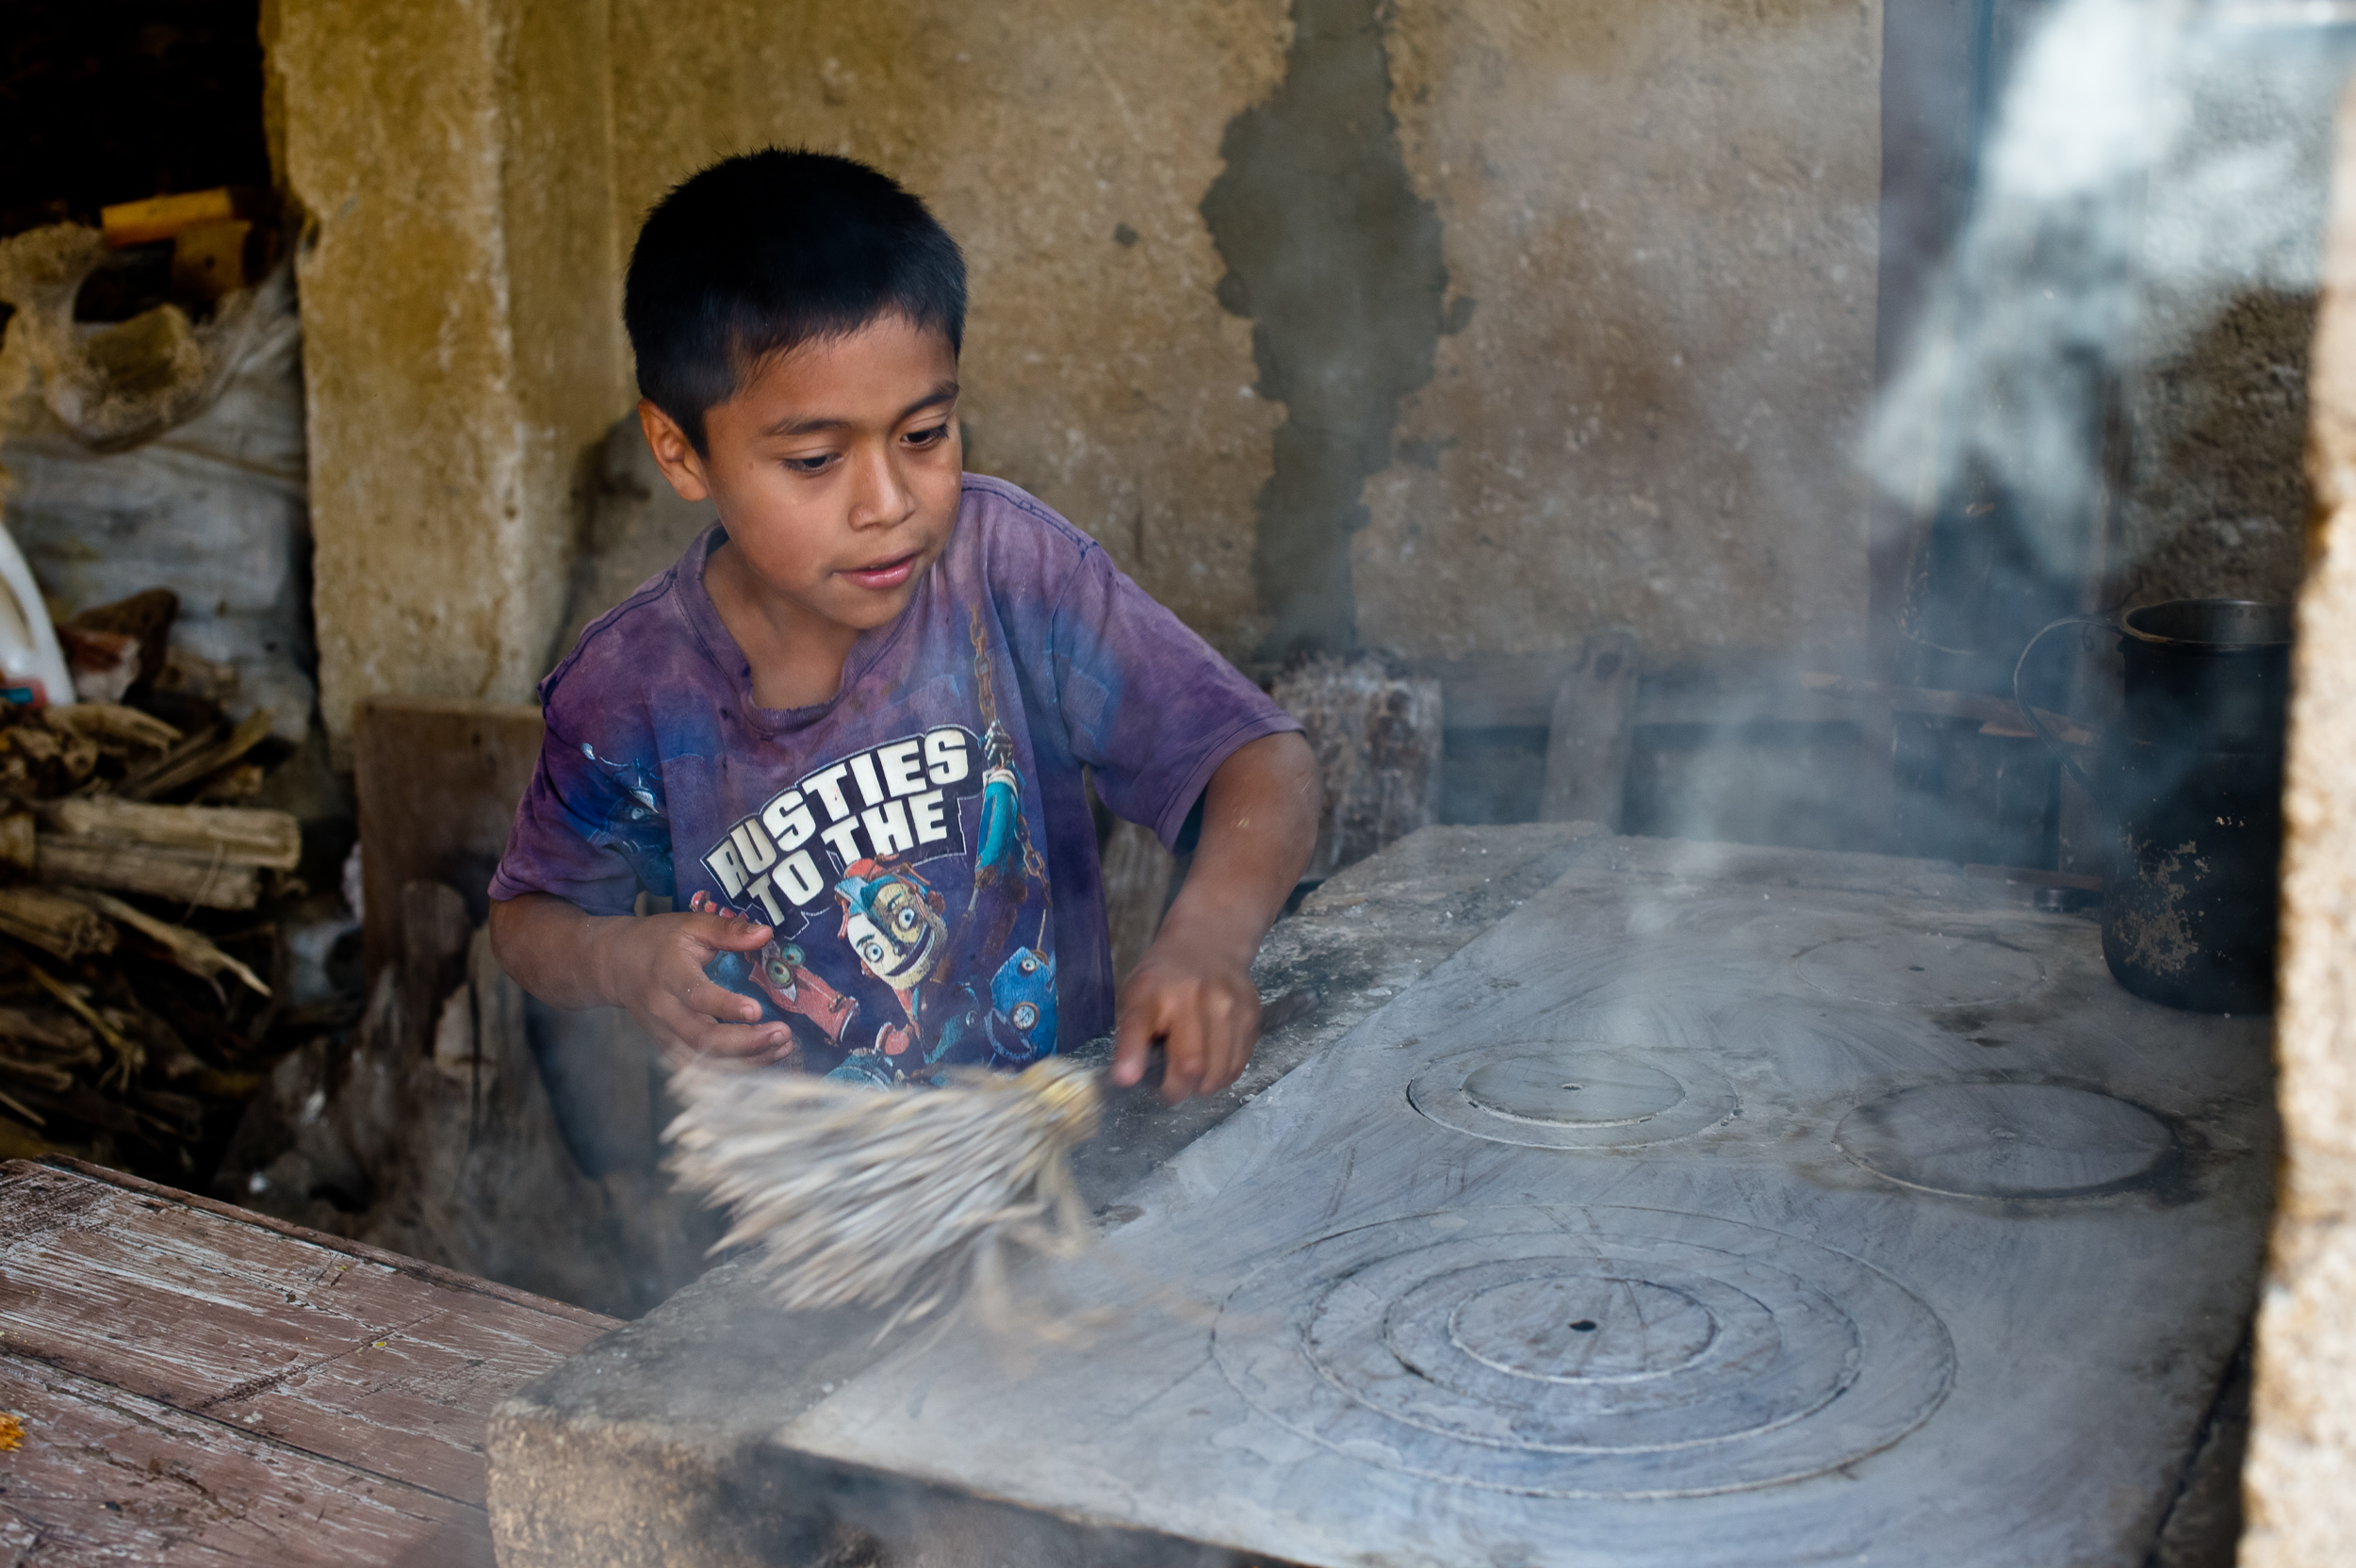 Maria's grandson cleans the family's grill. The family cooks in their open courtyard in front of their modest two-room home.